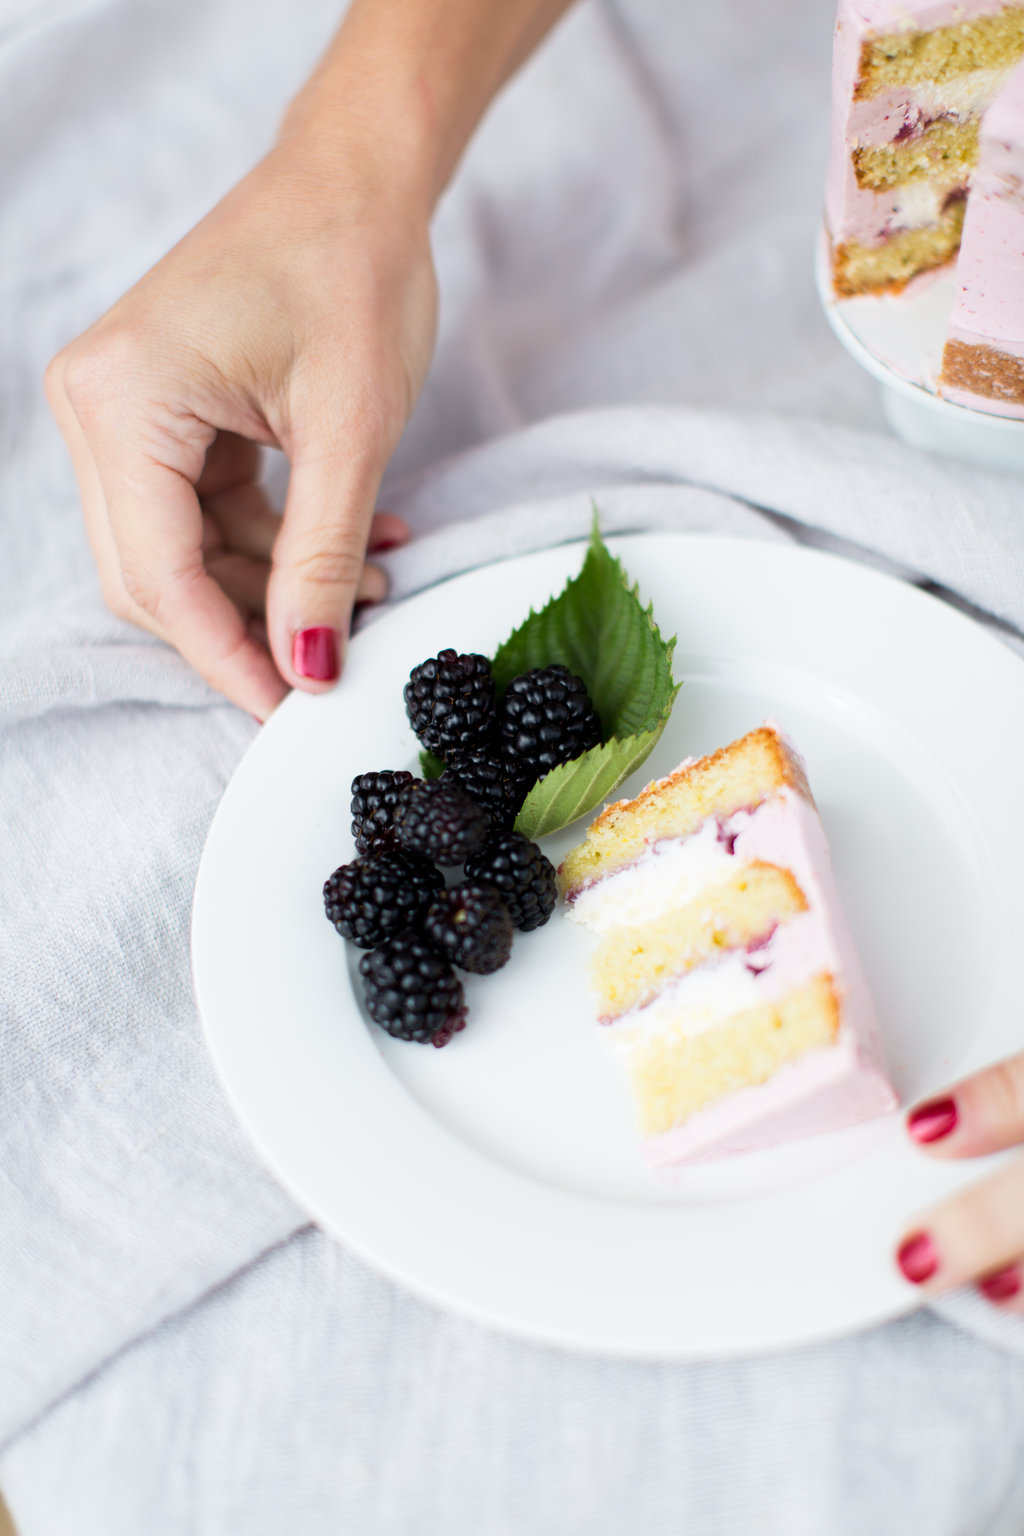 WILDBLACKBERRY CURD  2 c. wild blackberries (~1/2 C-3/4 C juice)  3 eggs yolks  4 tablespoons unsalted butter, cubed  ¼ C sugar  2 TB lemon juice  Bring blackberries, ¼ cup sugar and ¼ cup water to a simmer over medium; reduce to low heat and cook 10 minutes. Remove from heat and let cool 30 minutes. Once cool, puree blackberries in a food processor and strain in a fine-meshed sieve, to make about ½-3/4 cups juice.   Put egg yolks, zest and lemon juice in a saucepan, add berry juice and stir well. Cook over low heat, stirring constantly, until mixture thickens enough to coat the back of a spoon. Once thickened, remove from heat and strain curd through a fine-meshed sieve, pushing through with a spoon.  Whisk butter into warm curd until completely melted and combined. Cover top of curd tightly with plastic wrap to prevent a film from forming on top of curd and let cool completely before chilling in refrigerator.  Store in fridge for up to a week or freeze up to 3 months.  For Blackberry Buttercream, using a whisk attachment, add two tablespoons blackberry curd for every 2 cups of your favorite buttercream recipe and mix on medium speed until combined. To eliminate air bubbles, switch to a paddle attachment and mix for 2 minutes on medium speed.